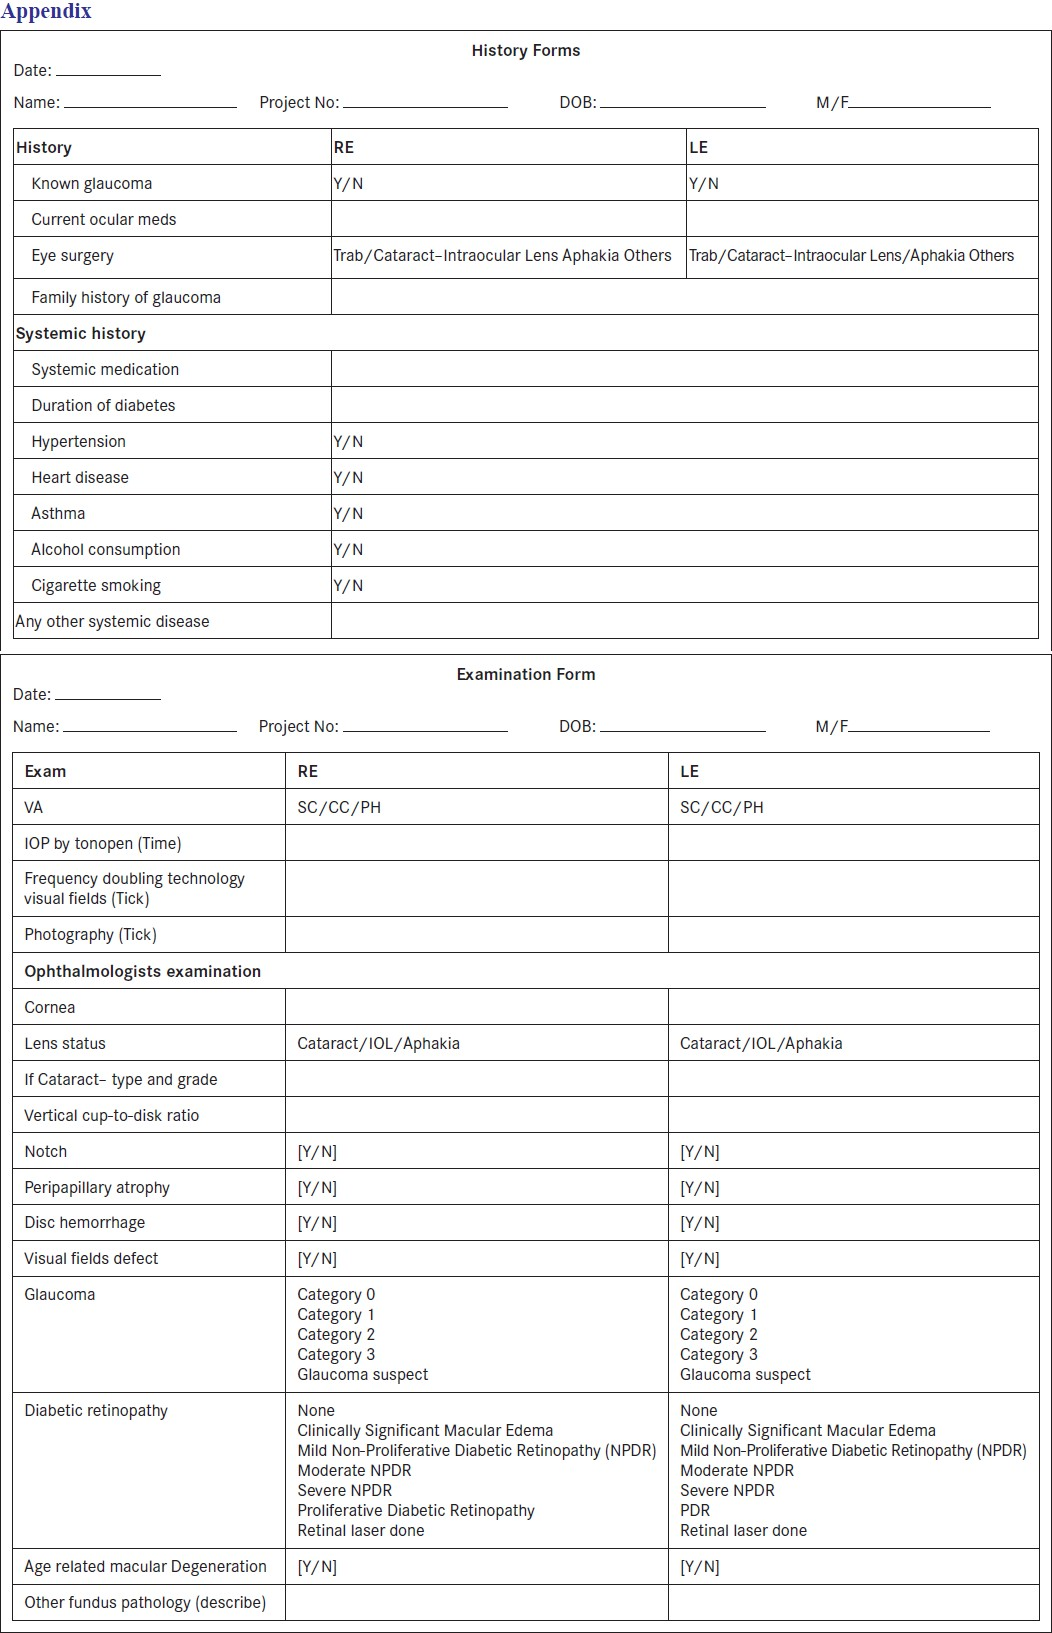 General physical exam form bing images for Ophthalmology exam template